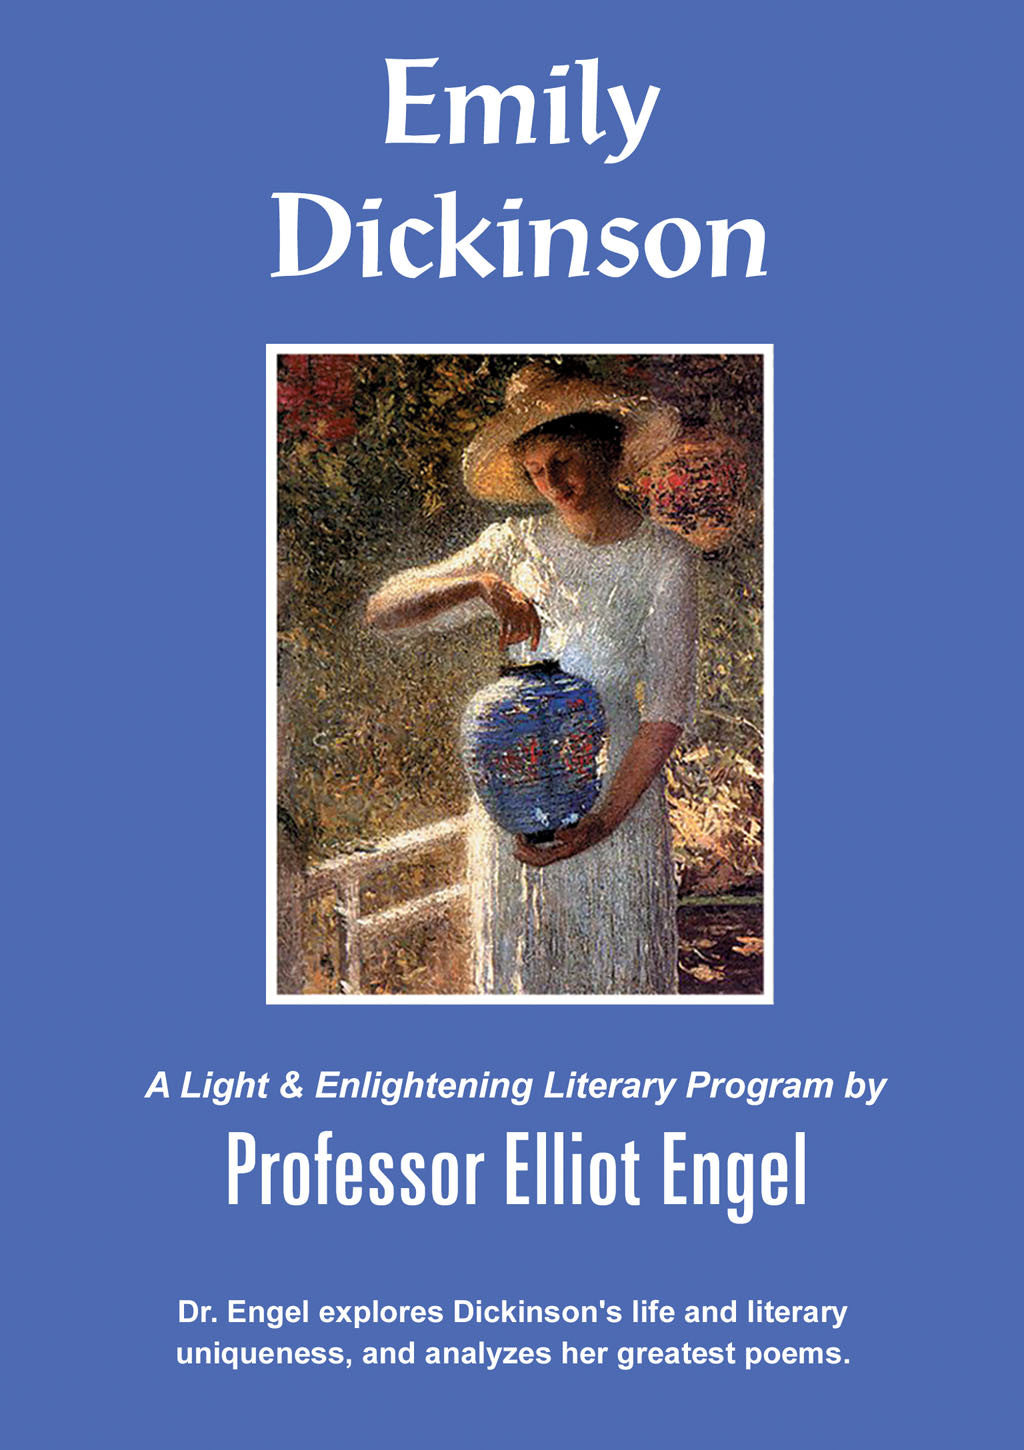 DL13 Emily Dickinson - AUDIO DOWNLOAD